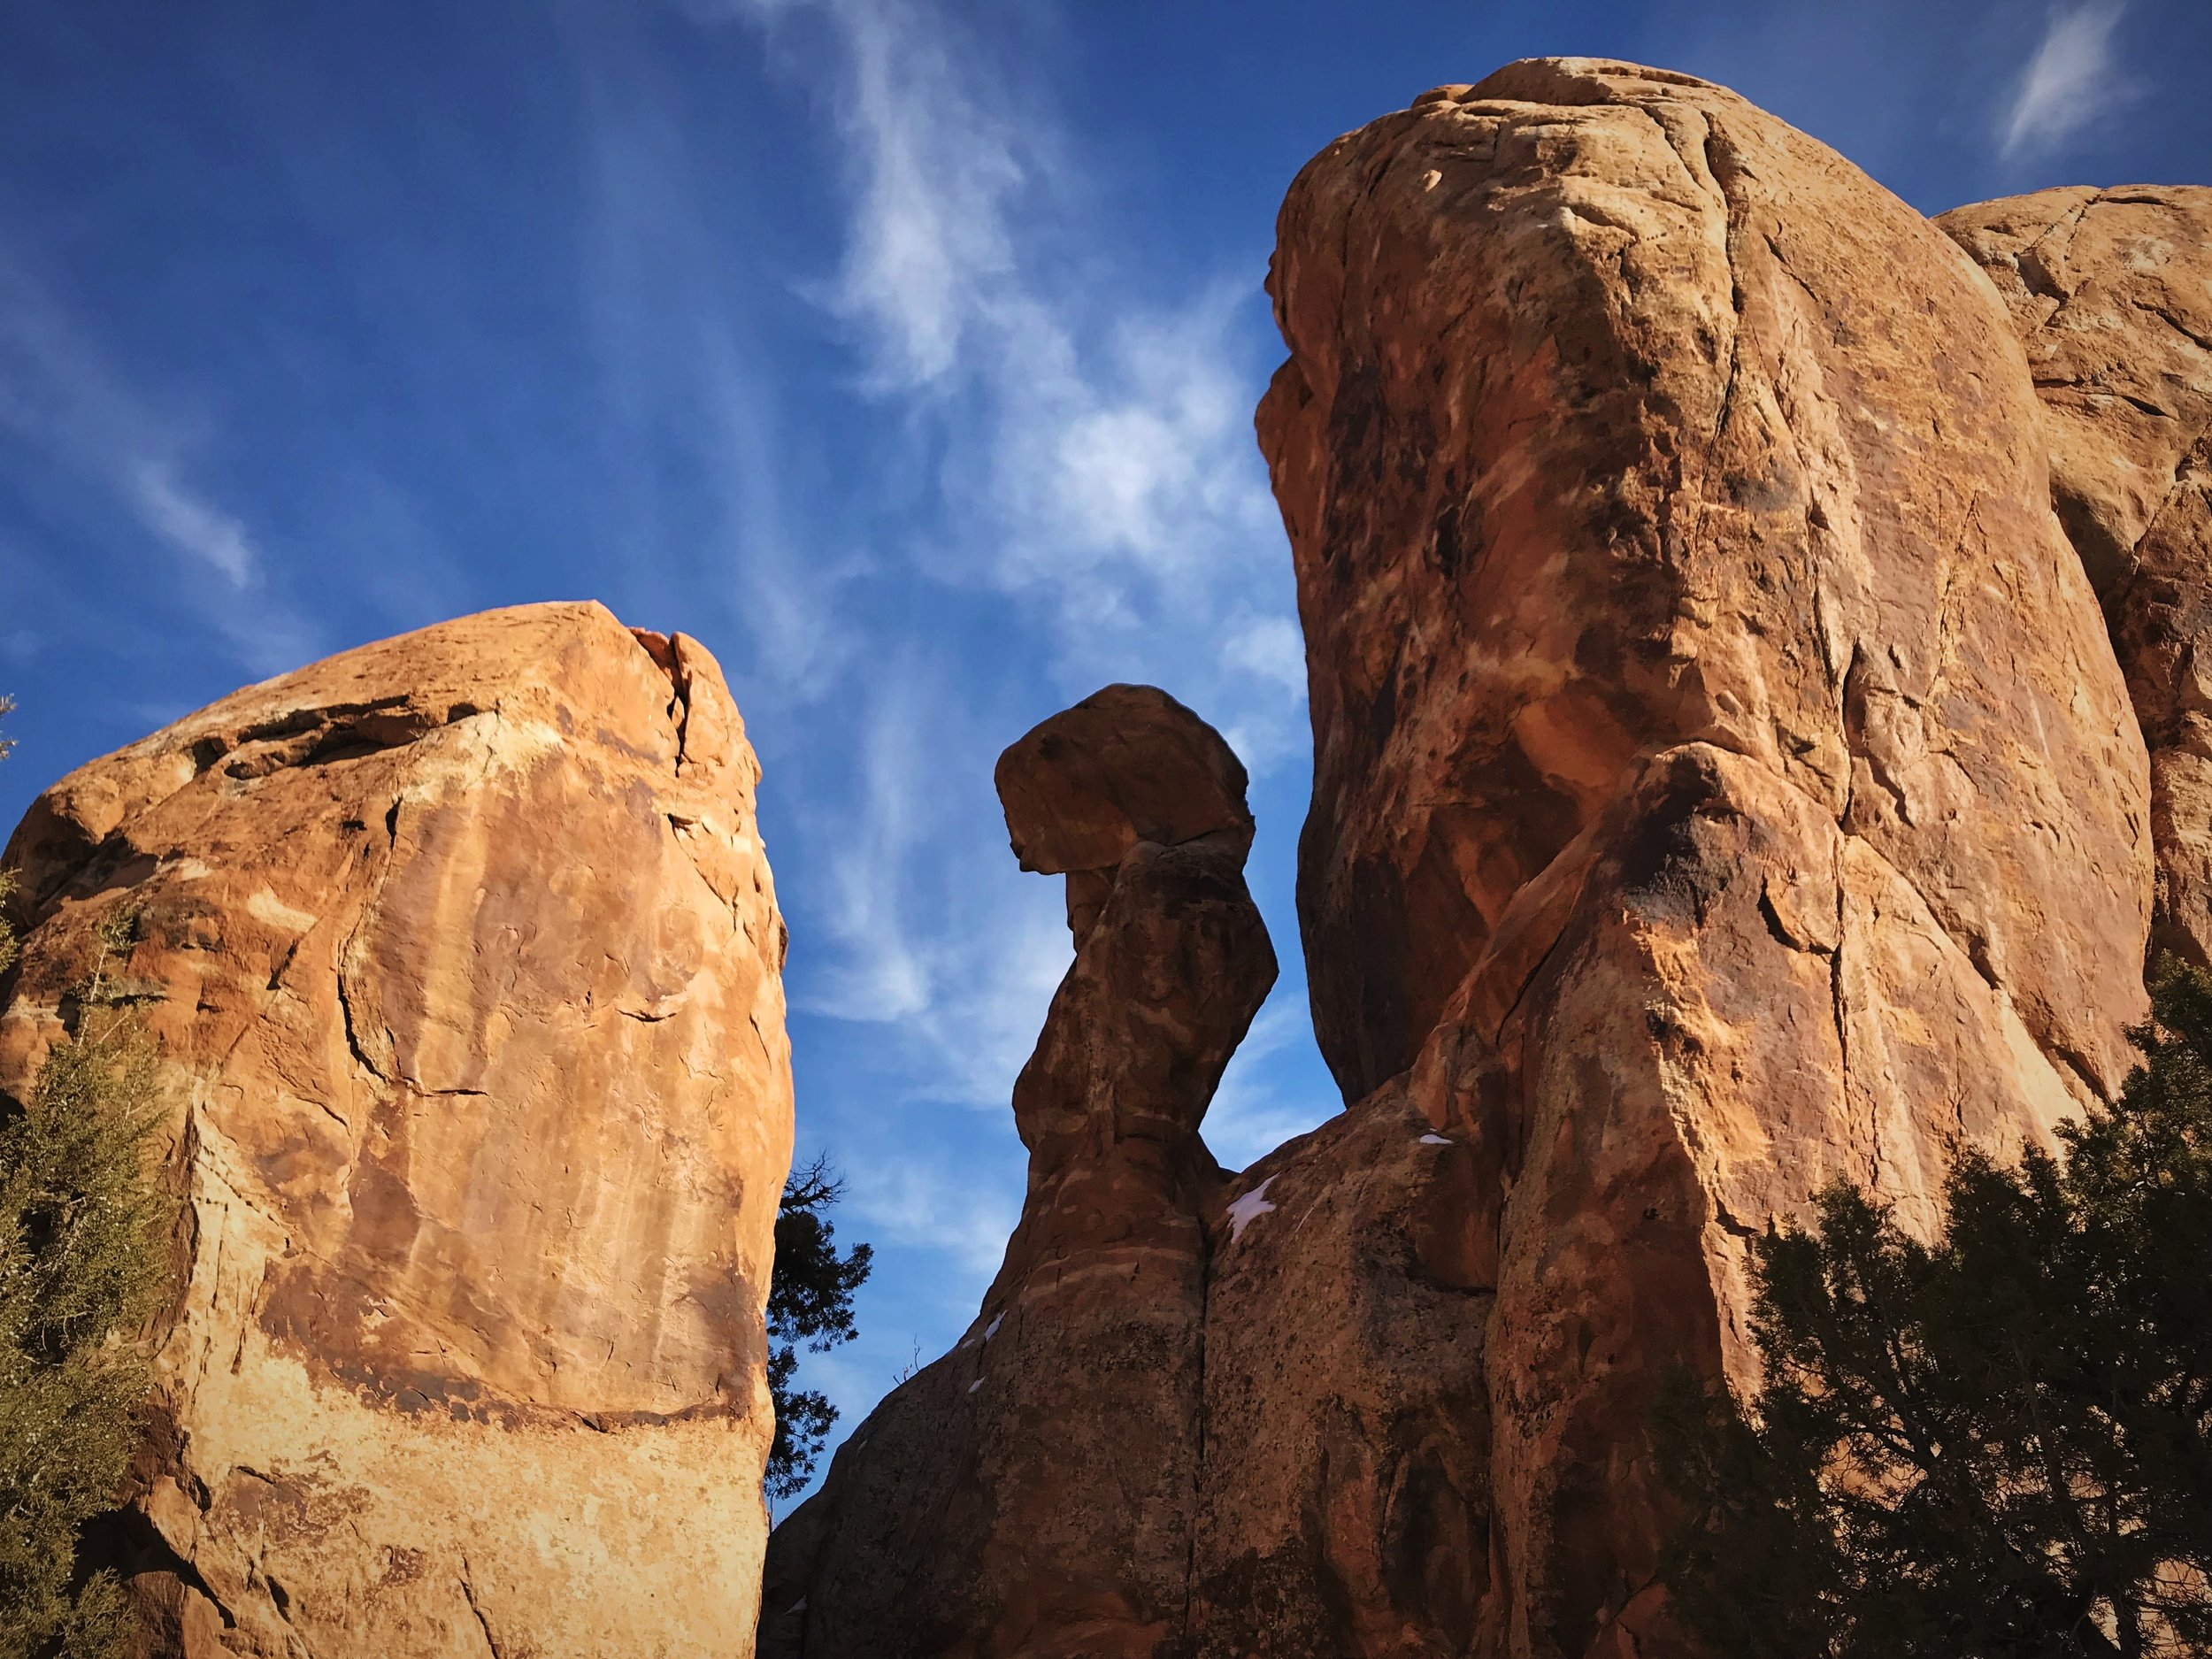 A curious rock formation early in the hike along the Devils Garden Loop.